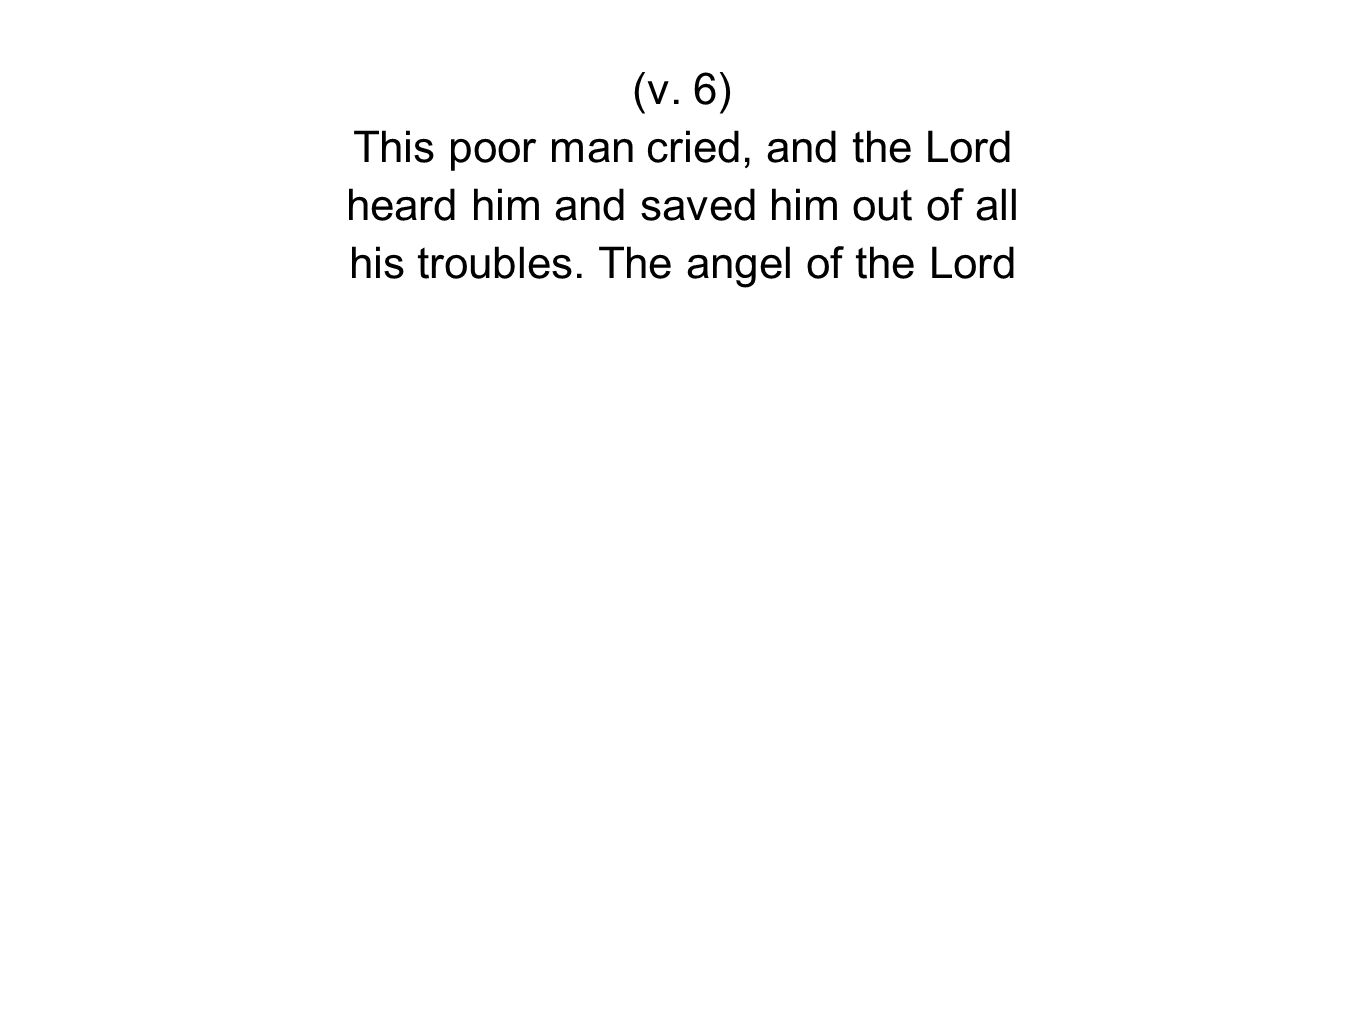 (v. 6) This poor man cried, and the Lord heard him and saved him out of all his troubles.